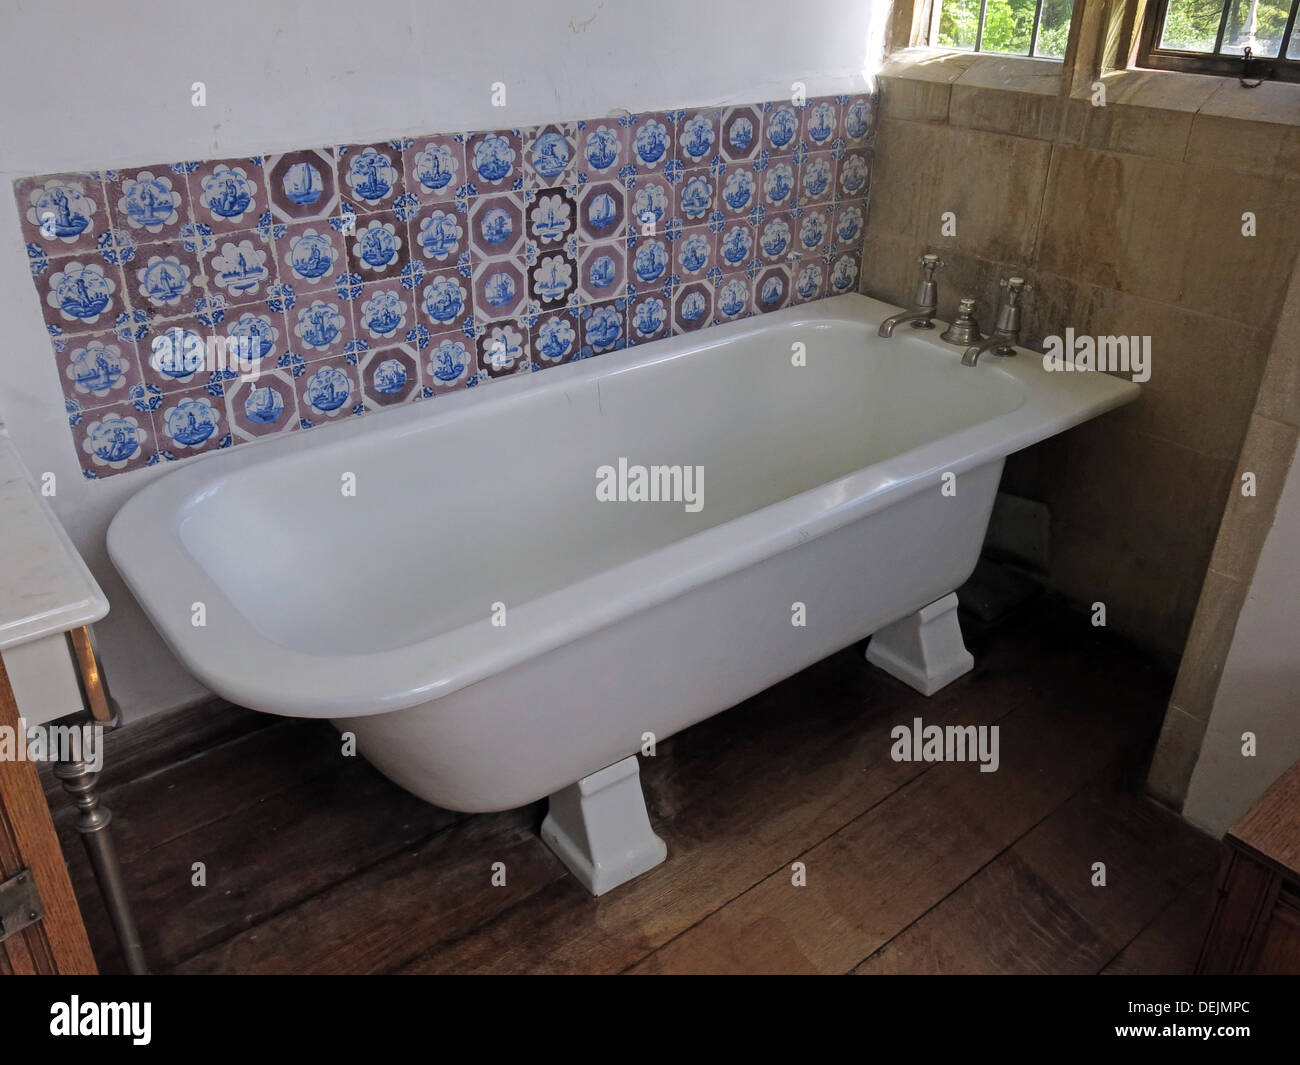 Barrington,Court,Ilminster,Somerset,UK,TA19,0NQ,england,english,property,properties,places,to,visit,for,tourists,tourist,traveller,travelers,travelers,attraction,attractions,garden,interior,baths,tape,old,antique,hot,cold,plug,sink,sinks,white,vitreous,vitrious,enamel,tiles,tile,old,plumbing,Gotonysmith enamal SW south west nr near Yeovil,Buy Pictures of,Buy Images Of